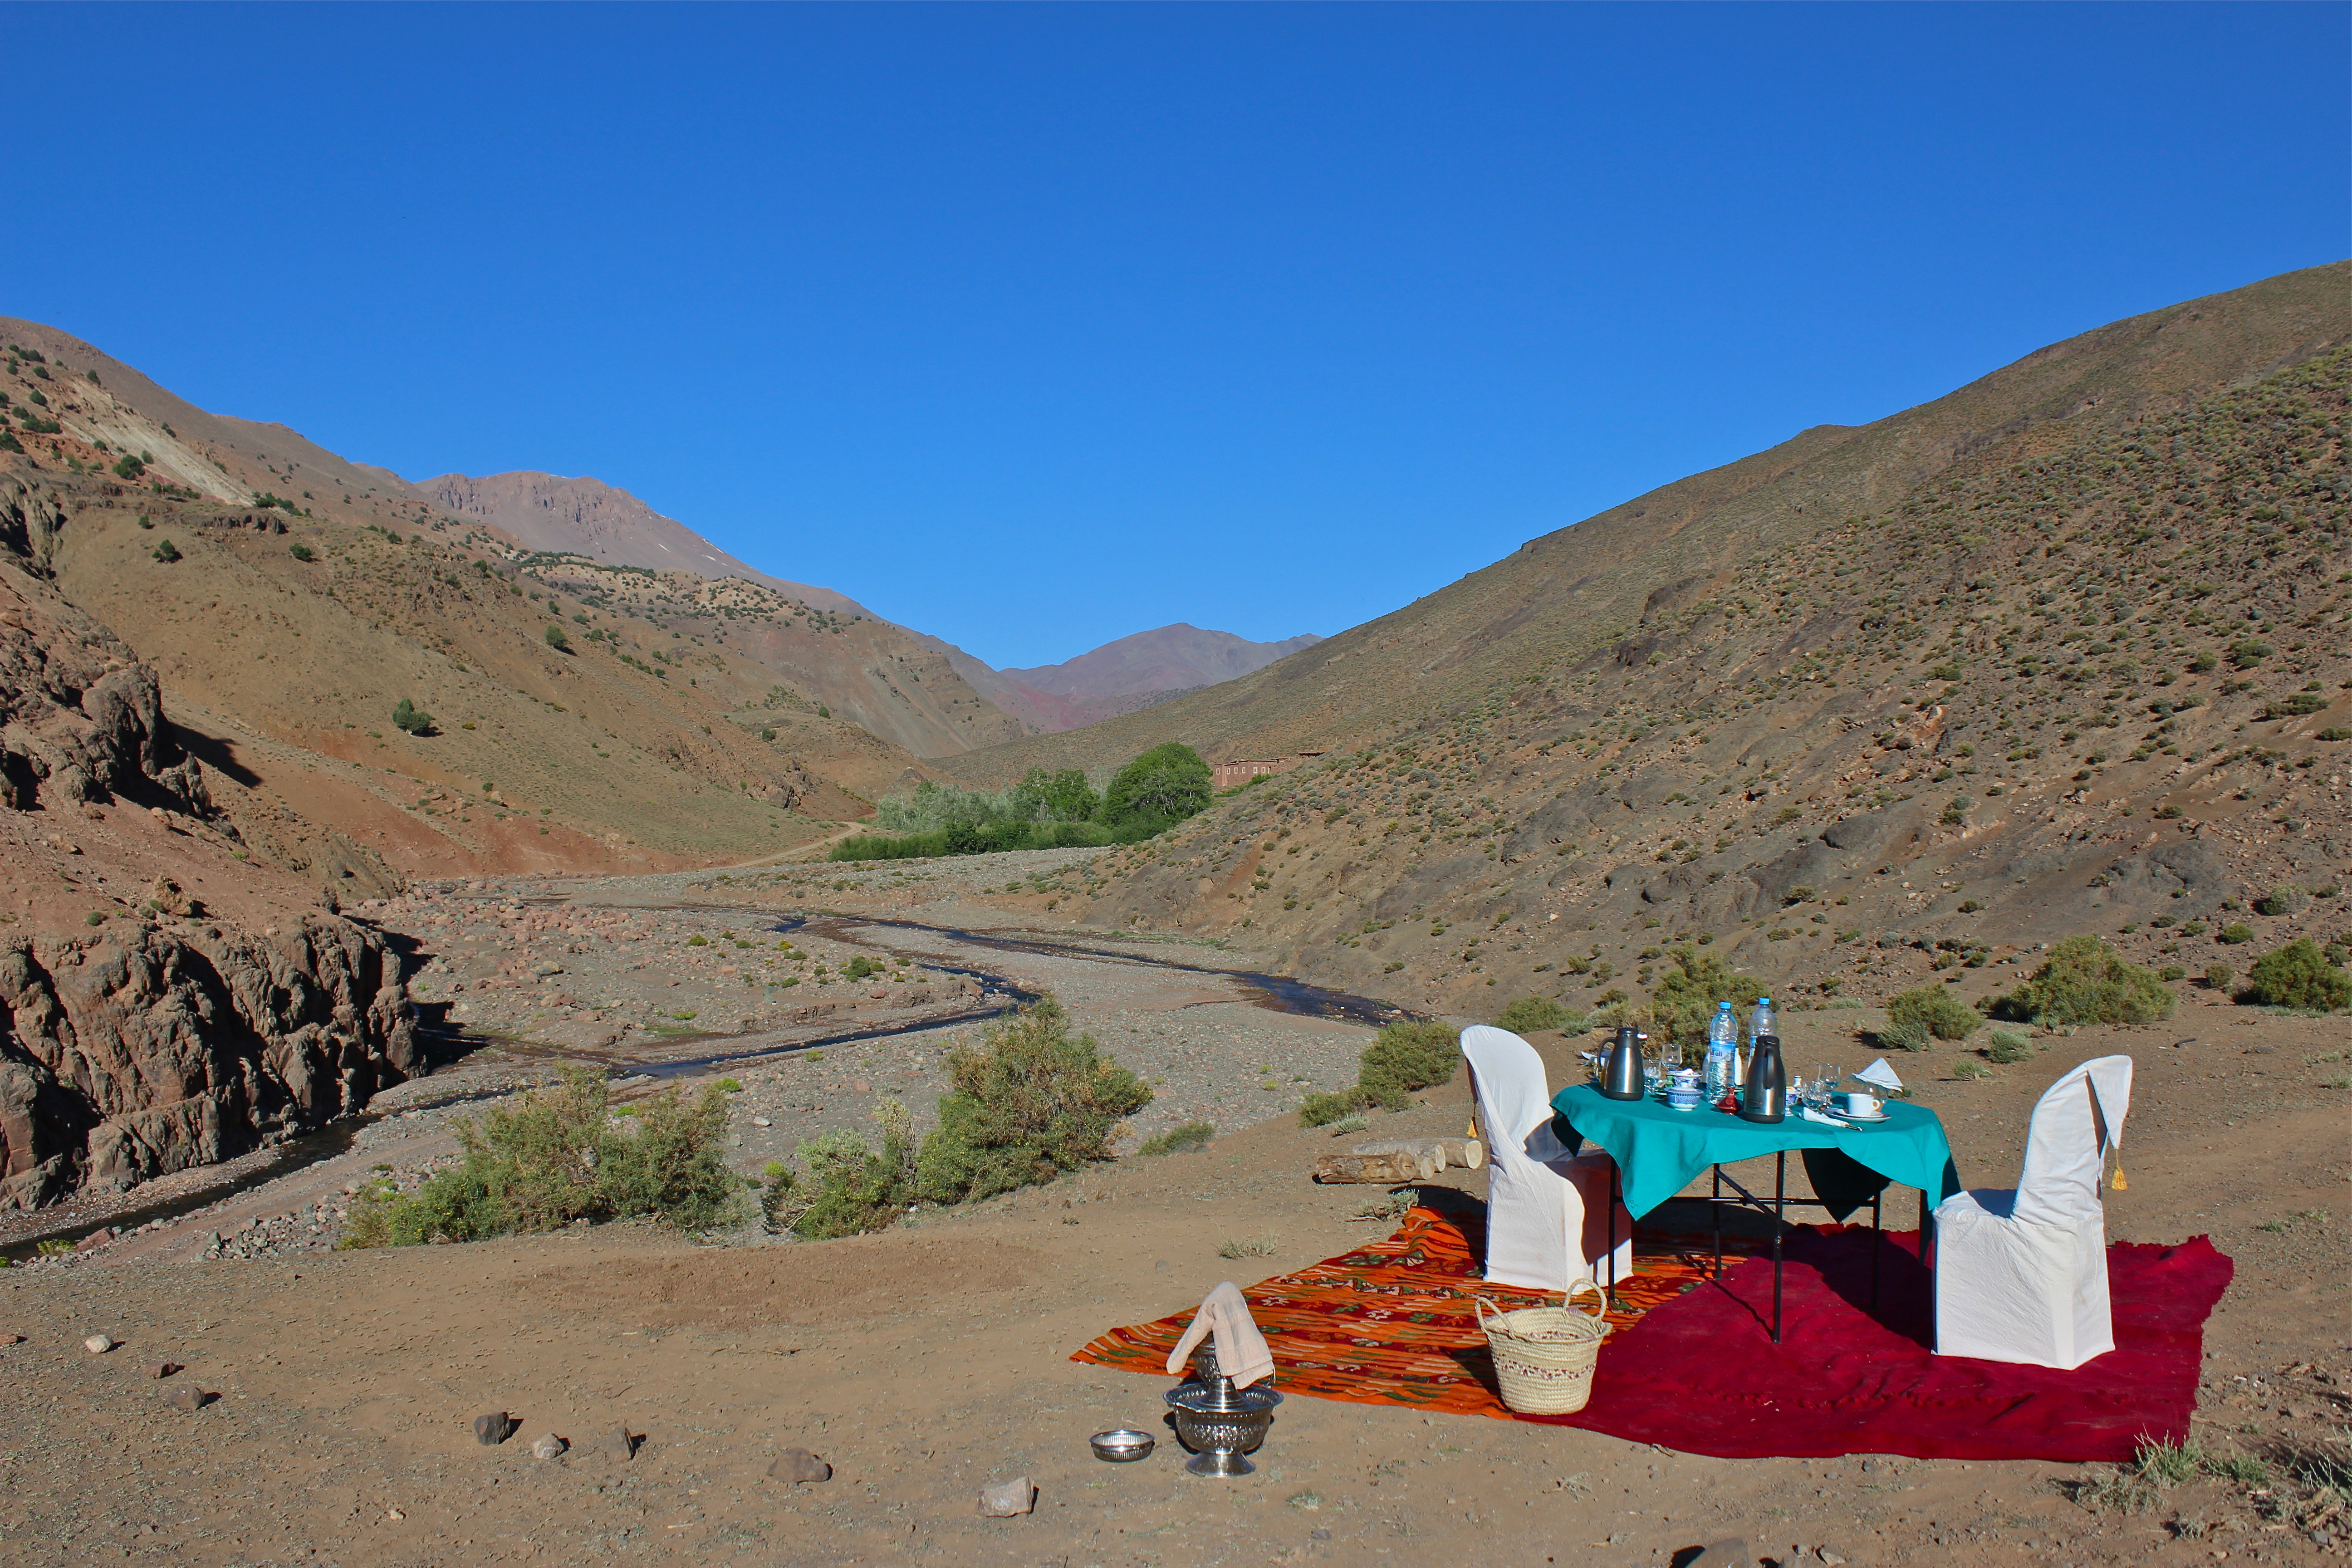 Breakfast of Berber pancakes in the Valley of Roses, High Atlas Mountains, Morocco